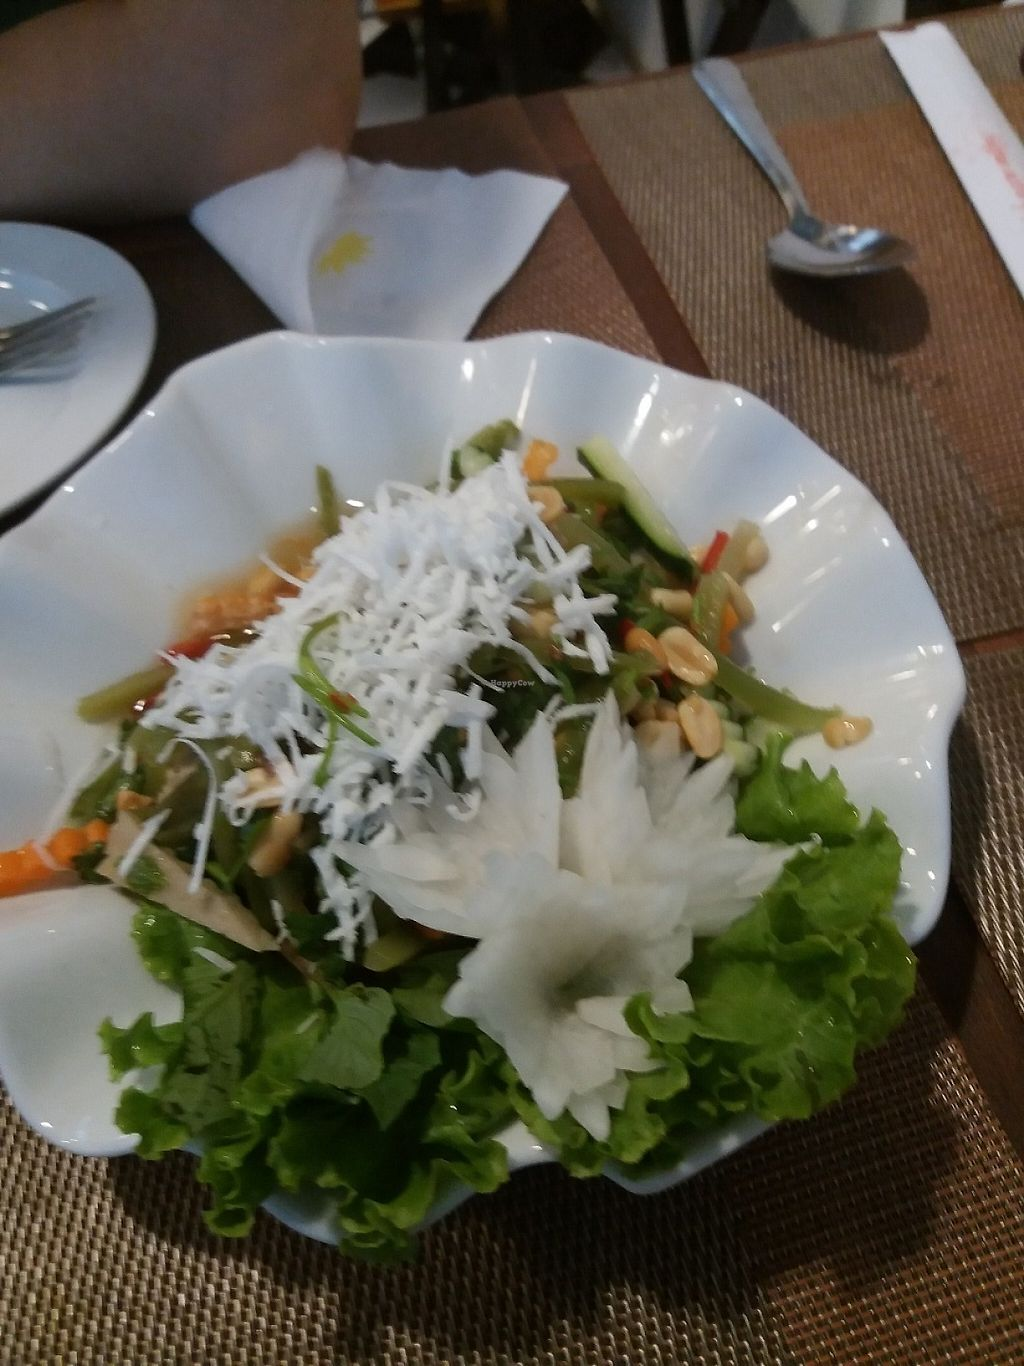 "Photo of CLOSED: Spring Lotus - Duong Sinh Chay  by <a href=""/members/profile/veganvirtues"">veganvirtues</a> <br/>Salad withroot vegetables <br/> May 20, 2017  - <a href='/contact/abuse/image/90983/260561'>Report</a>"